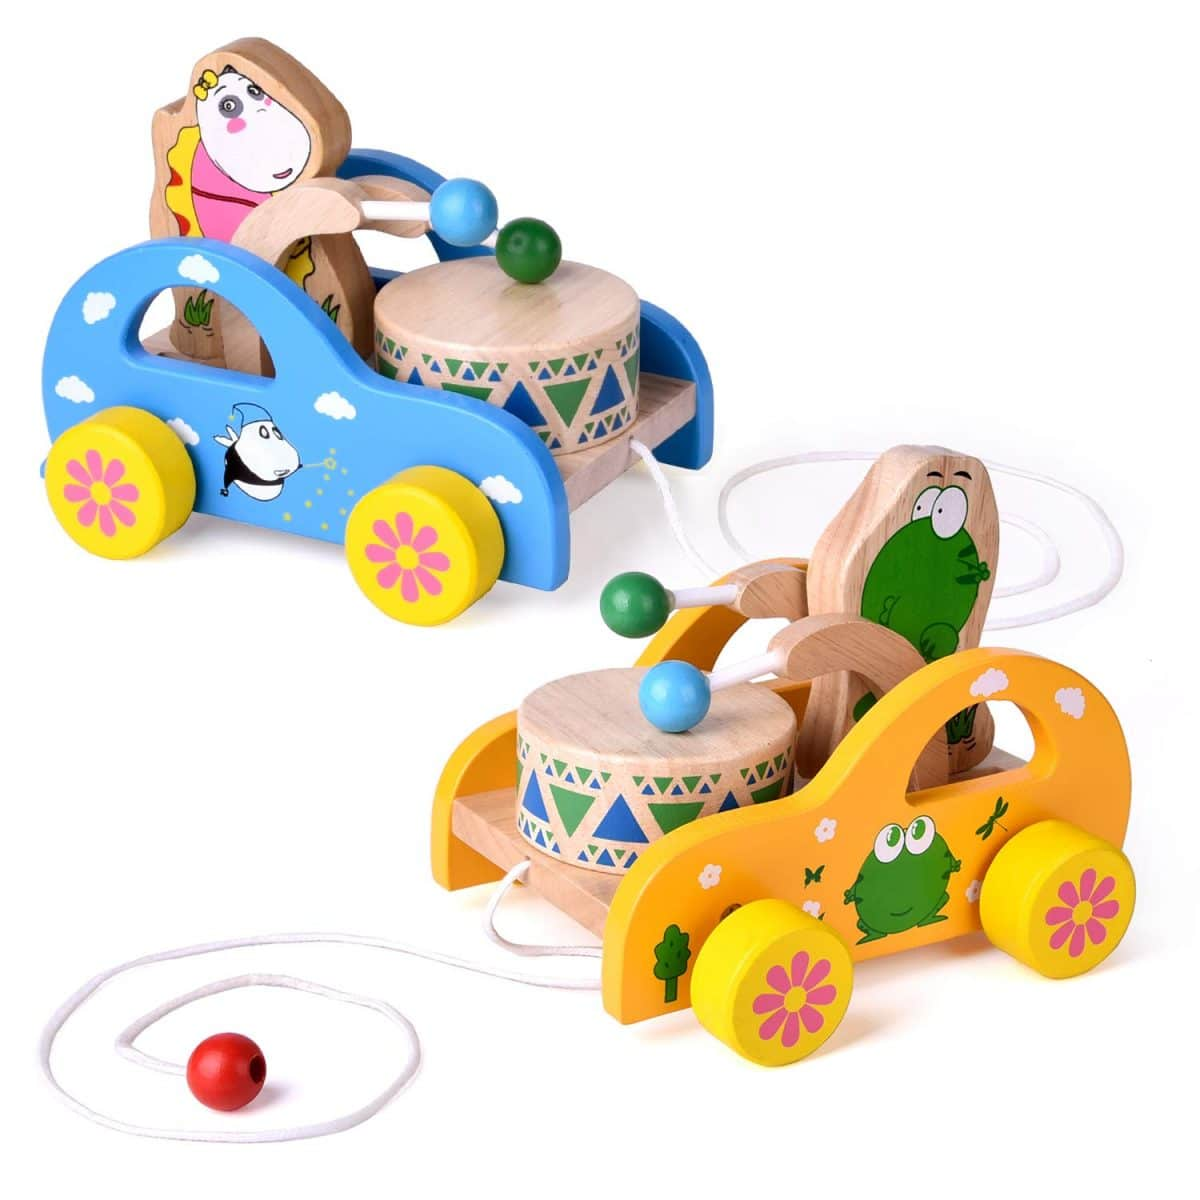 Wooden Animal Pull Along Toy Walking Car Babies Toddlers Children Learning Toy Q